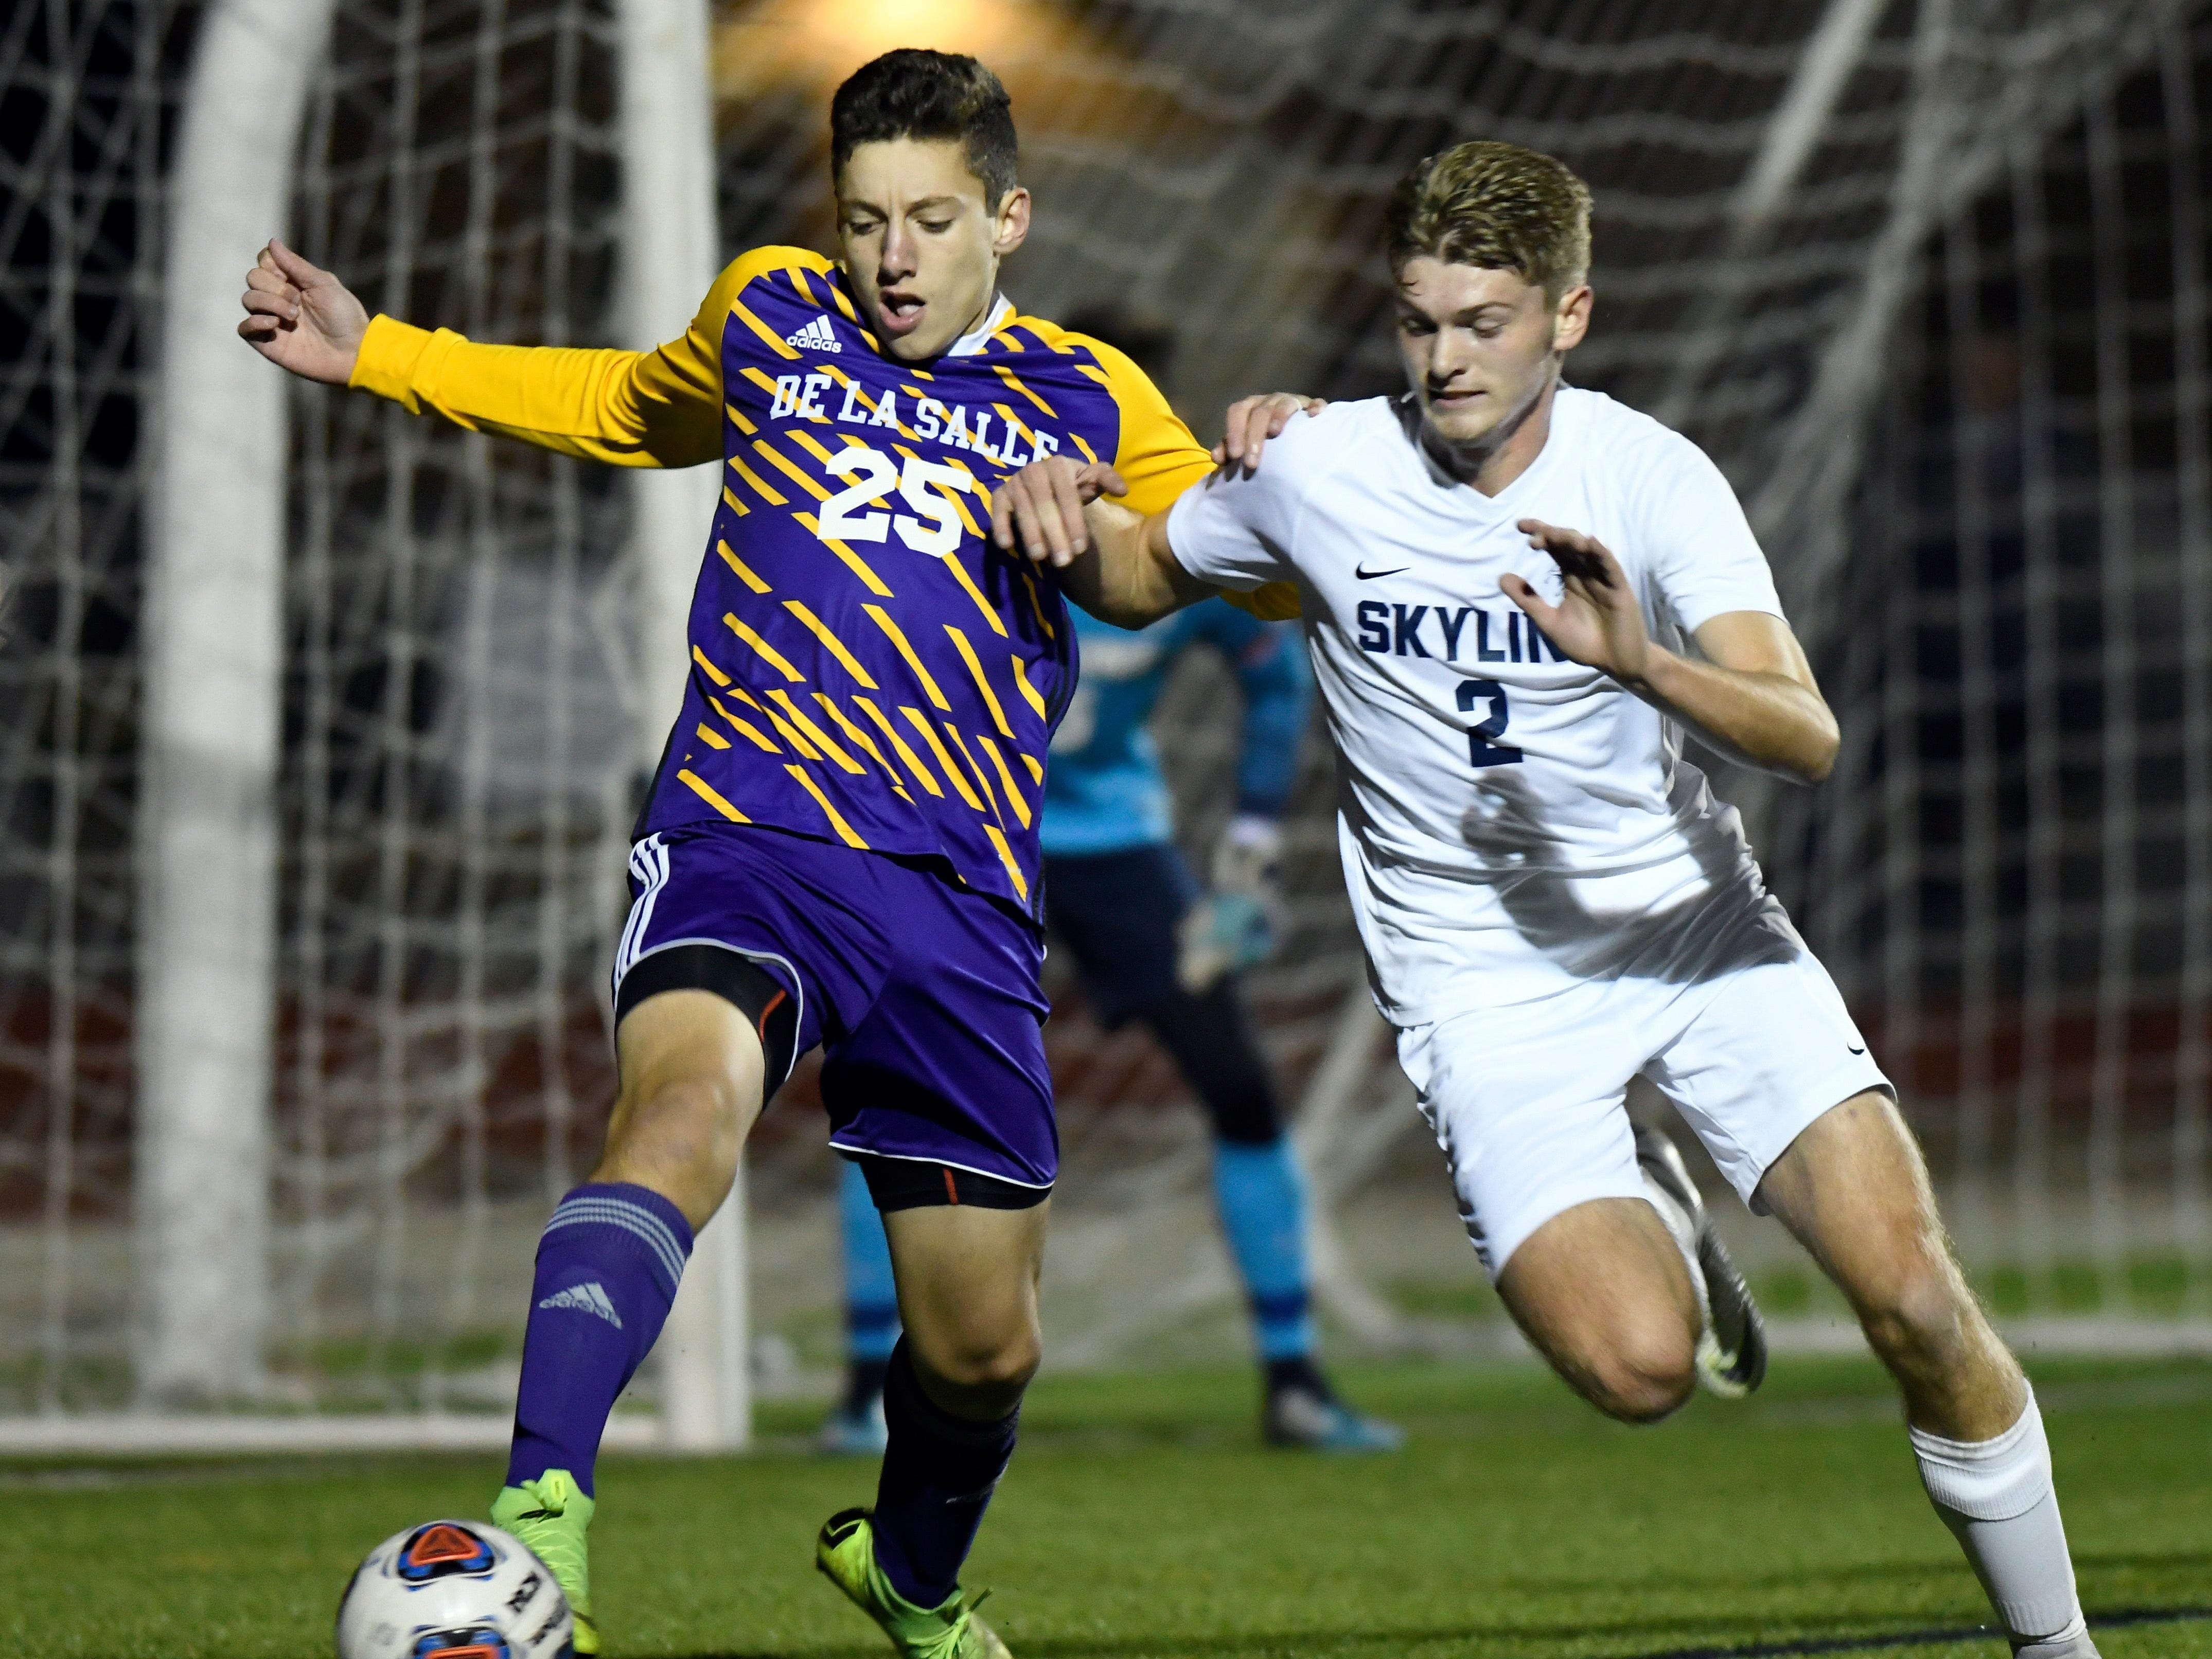 Fighting for the ball are Warren De La Salle midfielder Spencer LeBeau (25) and Ann Arbor Skyline player Jamie Palms (2) during the first half.